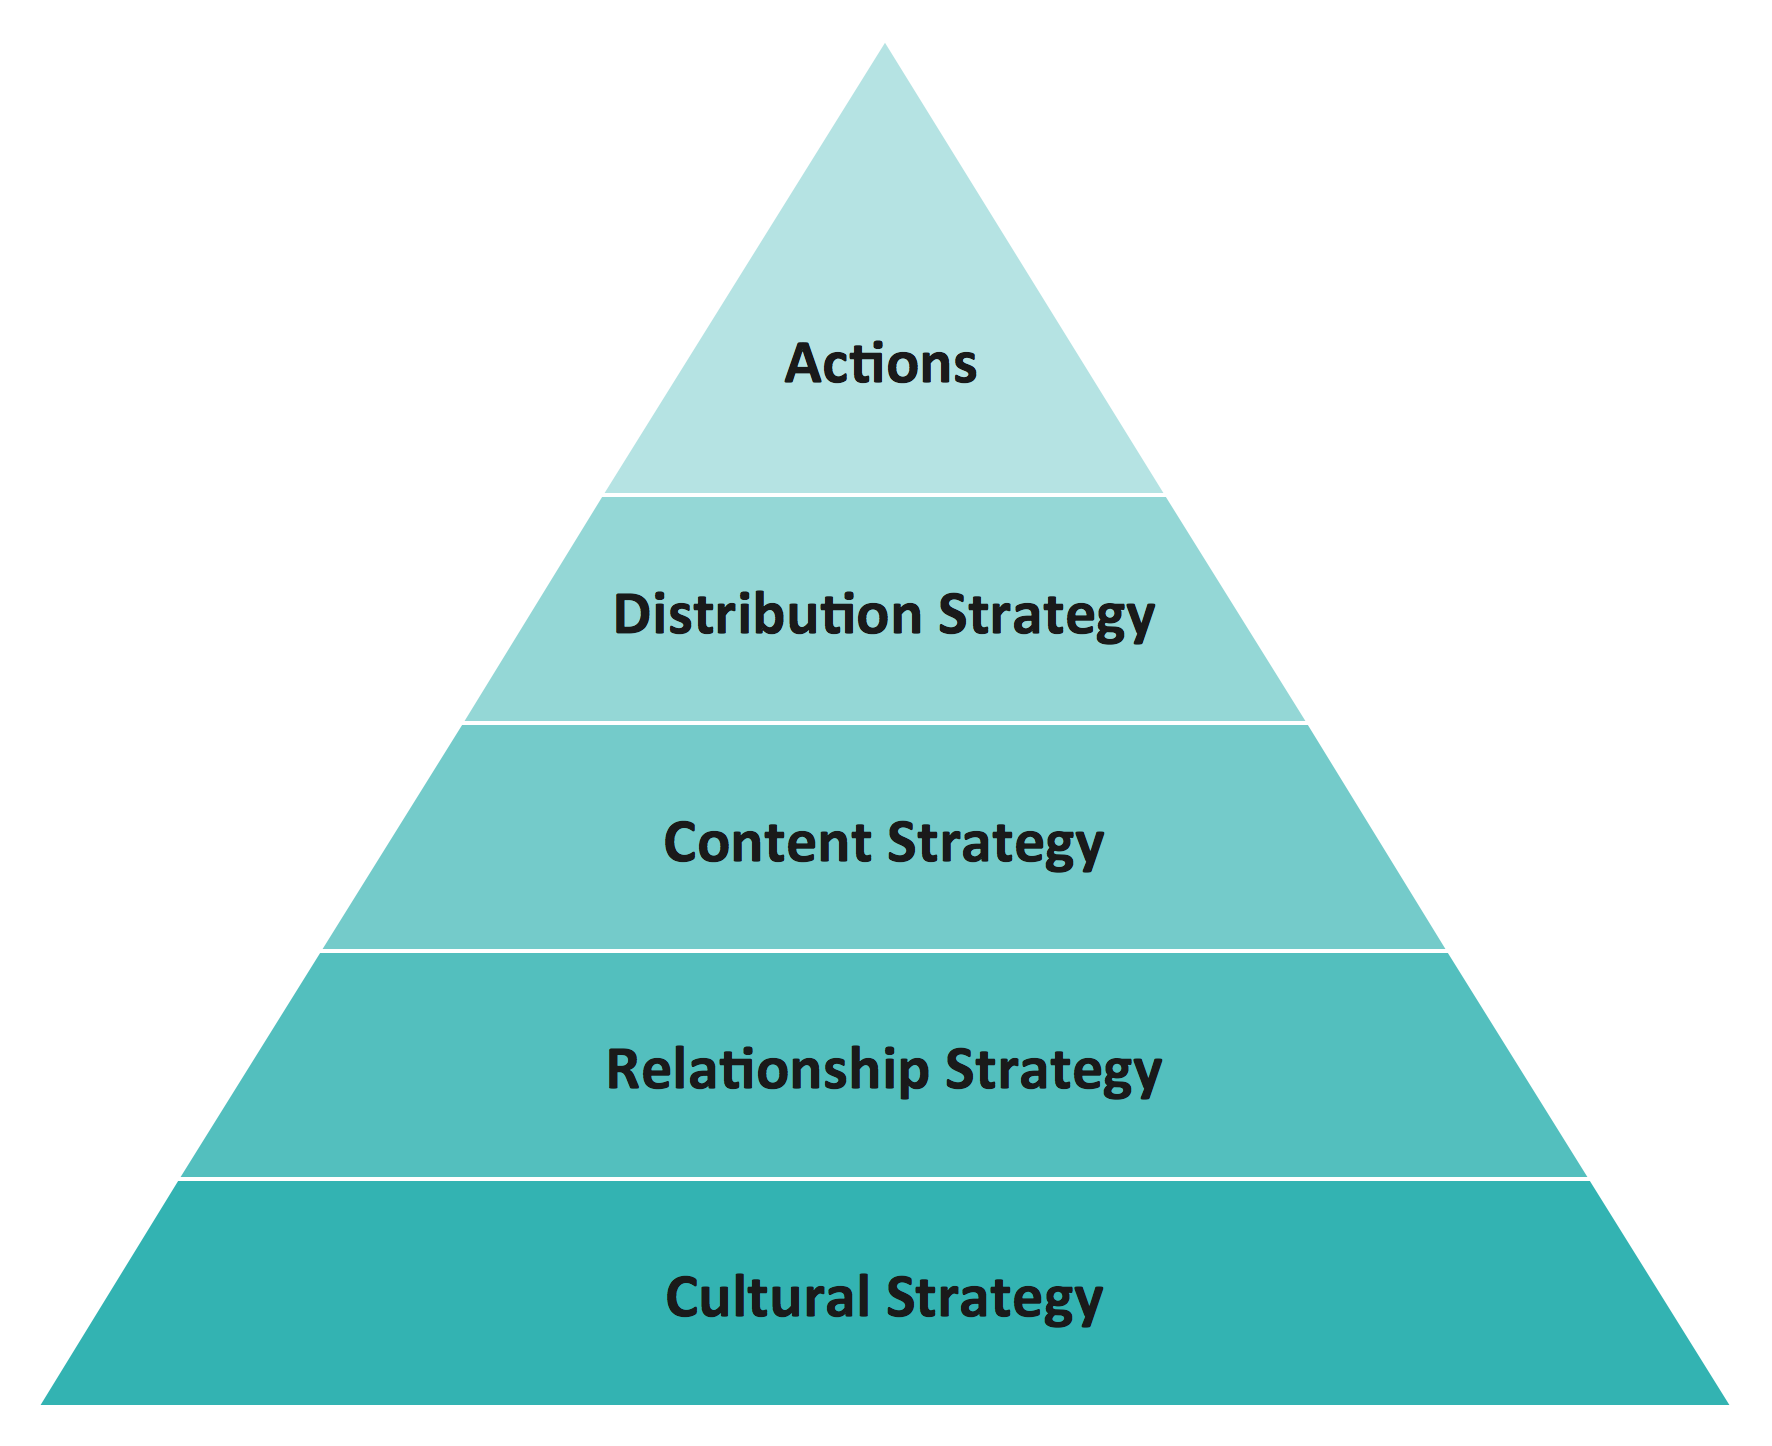 Competitor analysis this social strategy pyramid diagram includes 5 levels cultural strategy relashionship strategy content strategy distribution strategy actions ccuart Choice Image